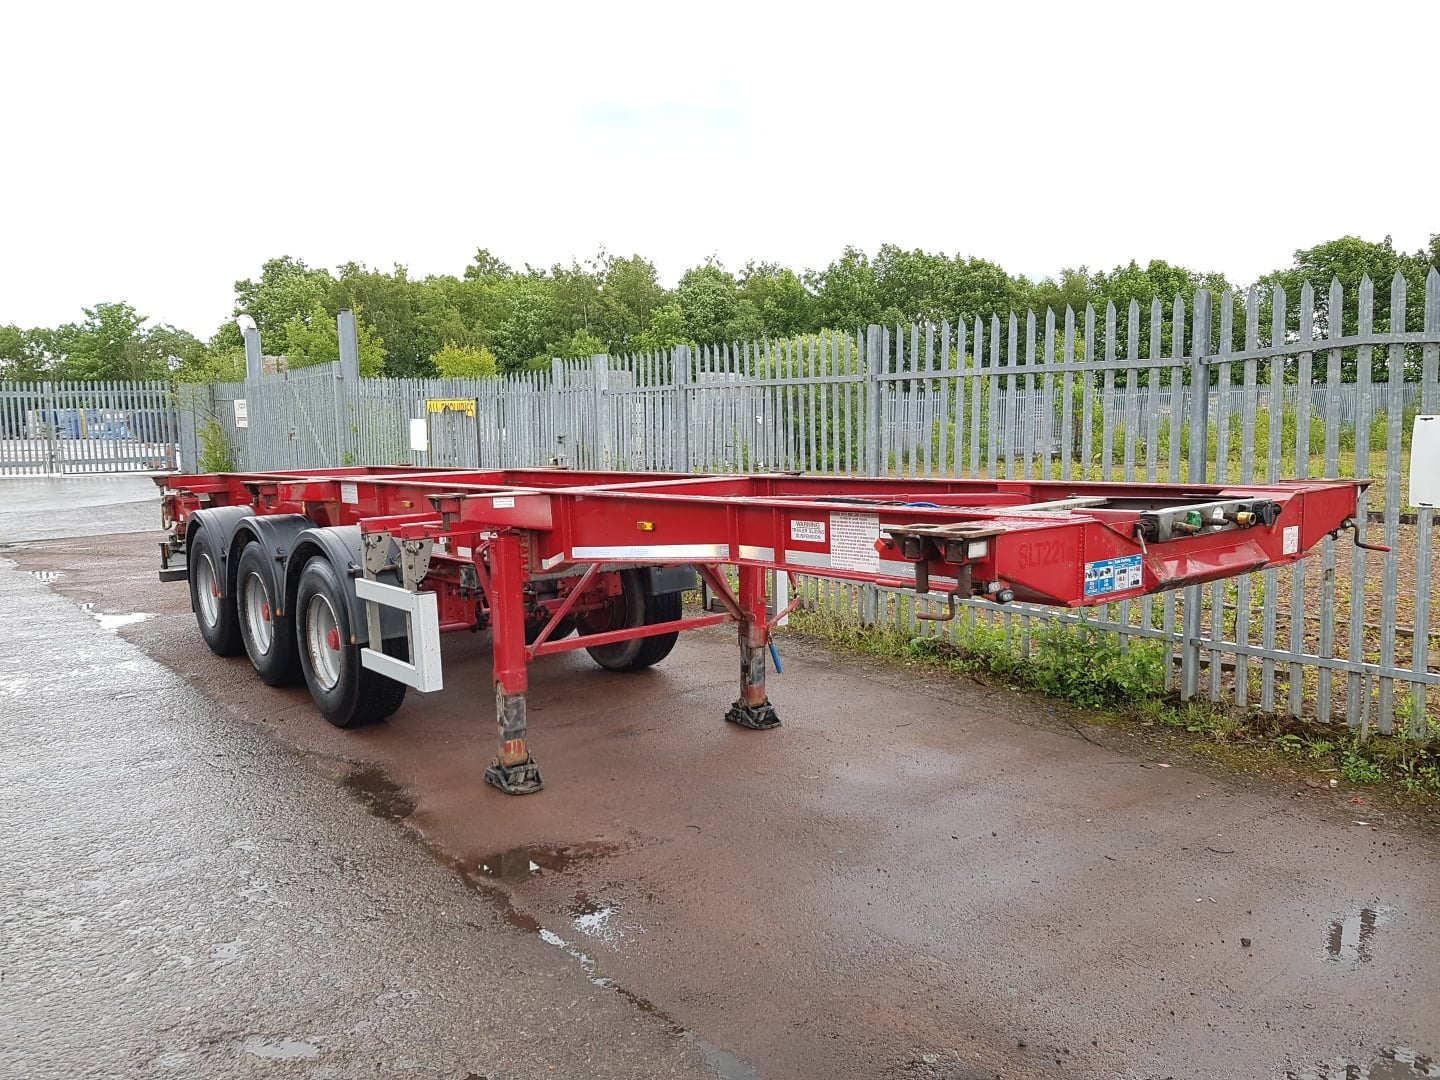 Choice of 2014 Montracon Skeletals. BPW drum brakes, 14 locks, raise lower valves, pull out front and rear sections for 45' operations.